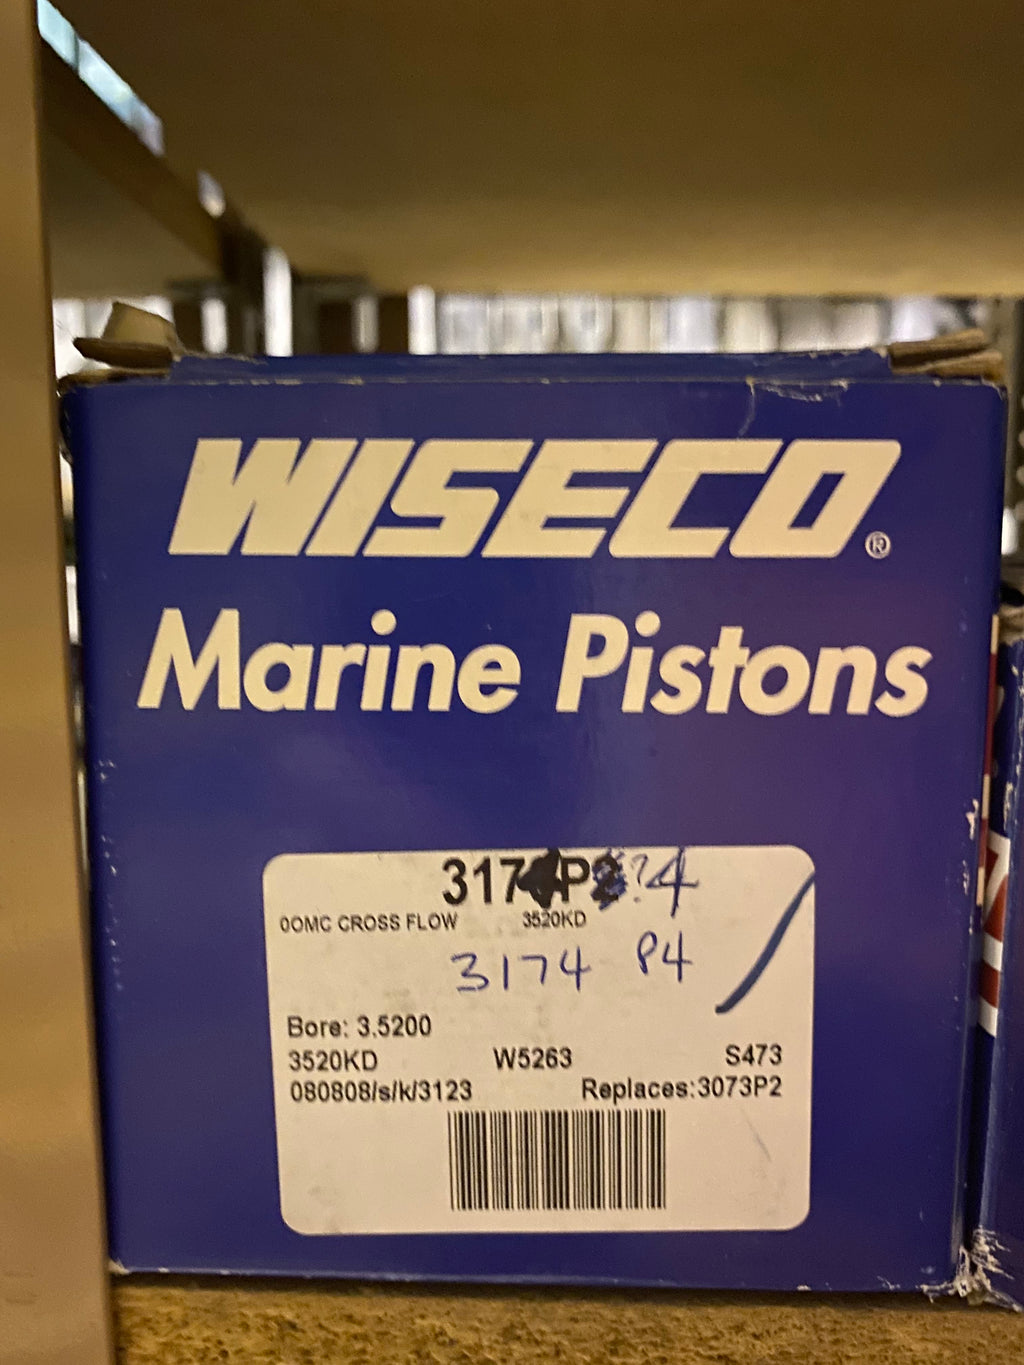 Wiseco Marine Piston Kit 3174P4 OMC Cross Flow +.044 3520KD